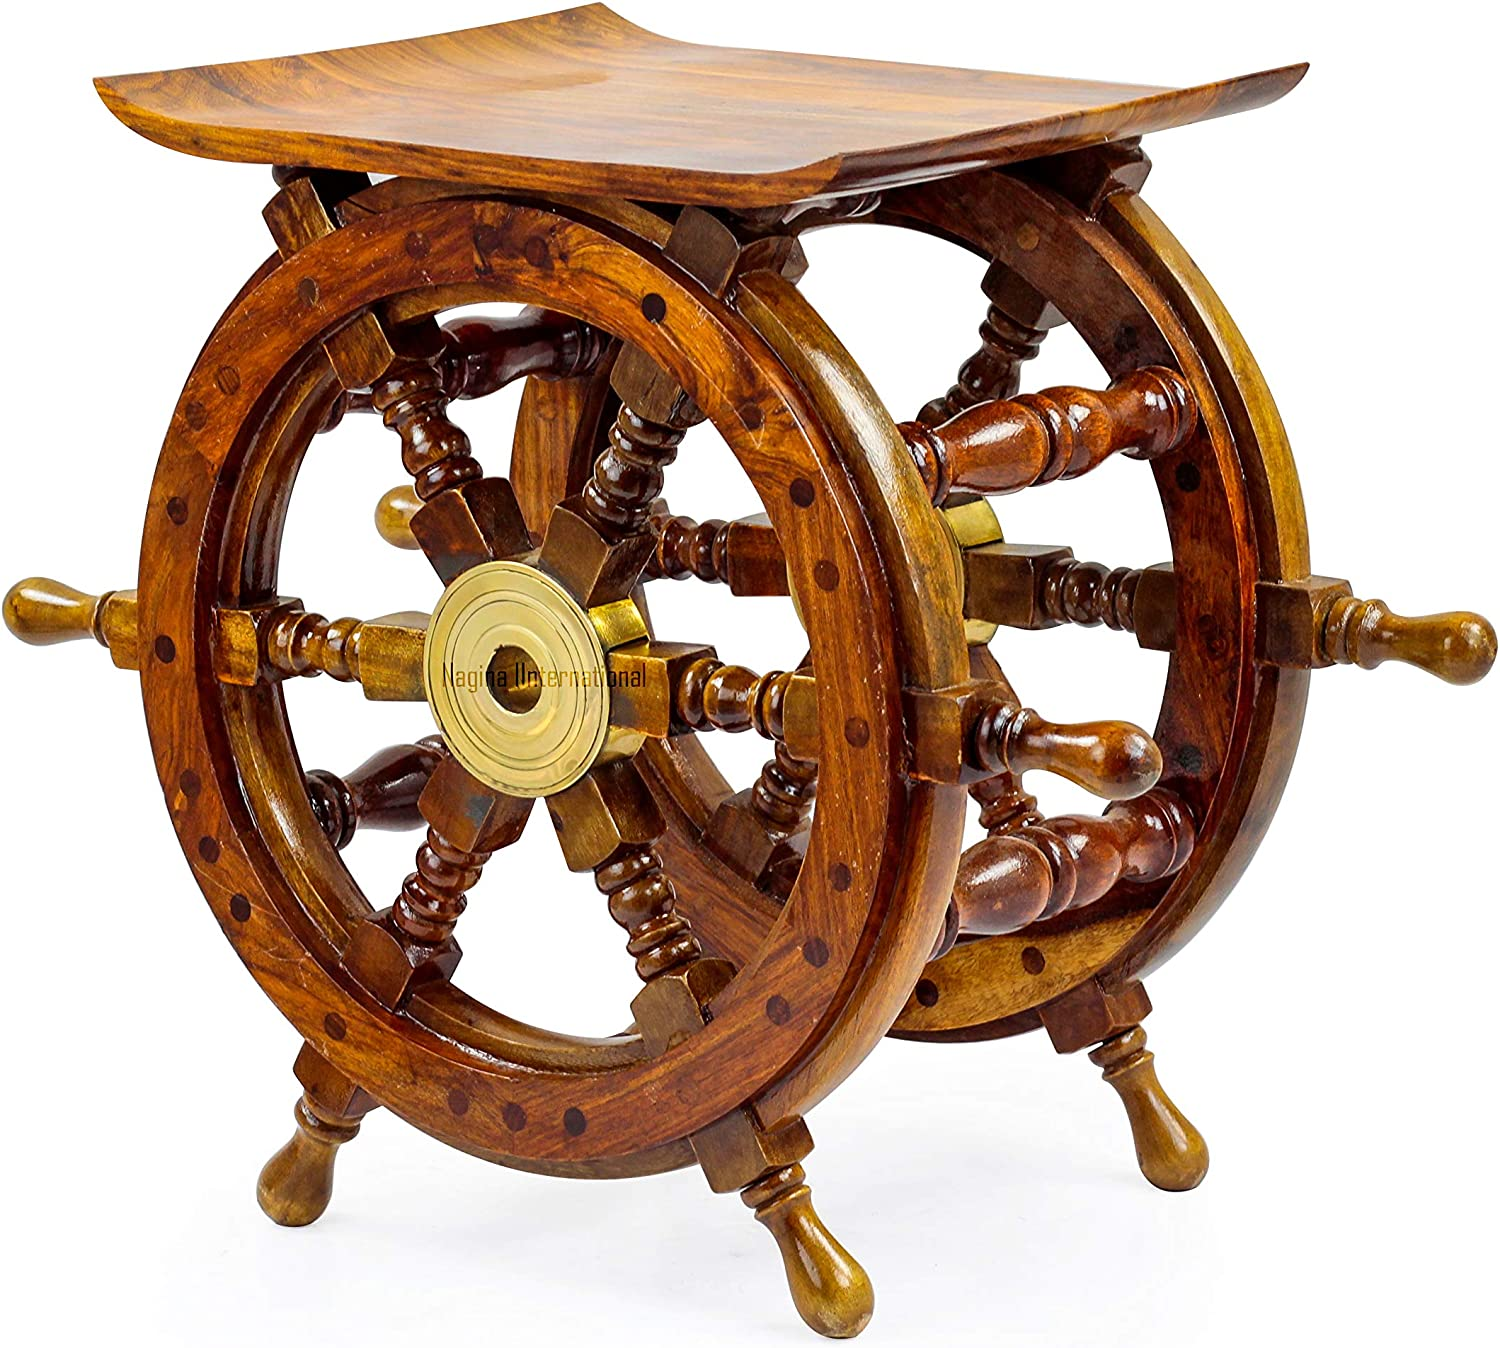 Nagina International Wooden Ship Wheel Home Decor Table | Pirate's Antique Brass Hub Motiff (18 Inches)